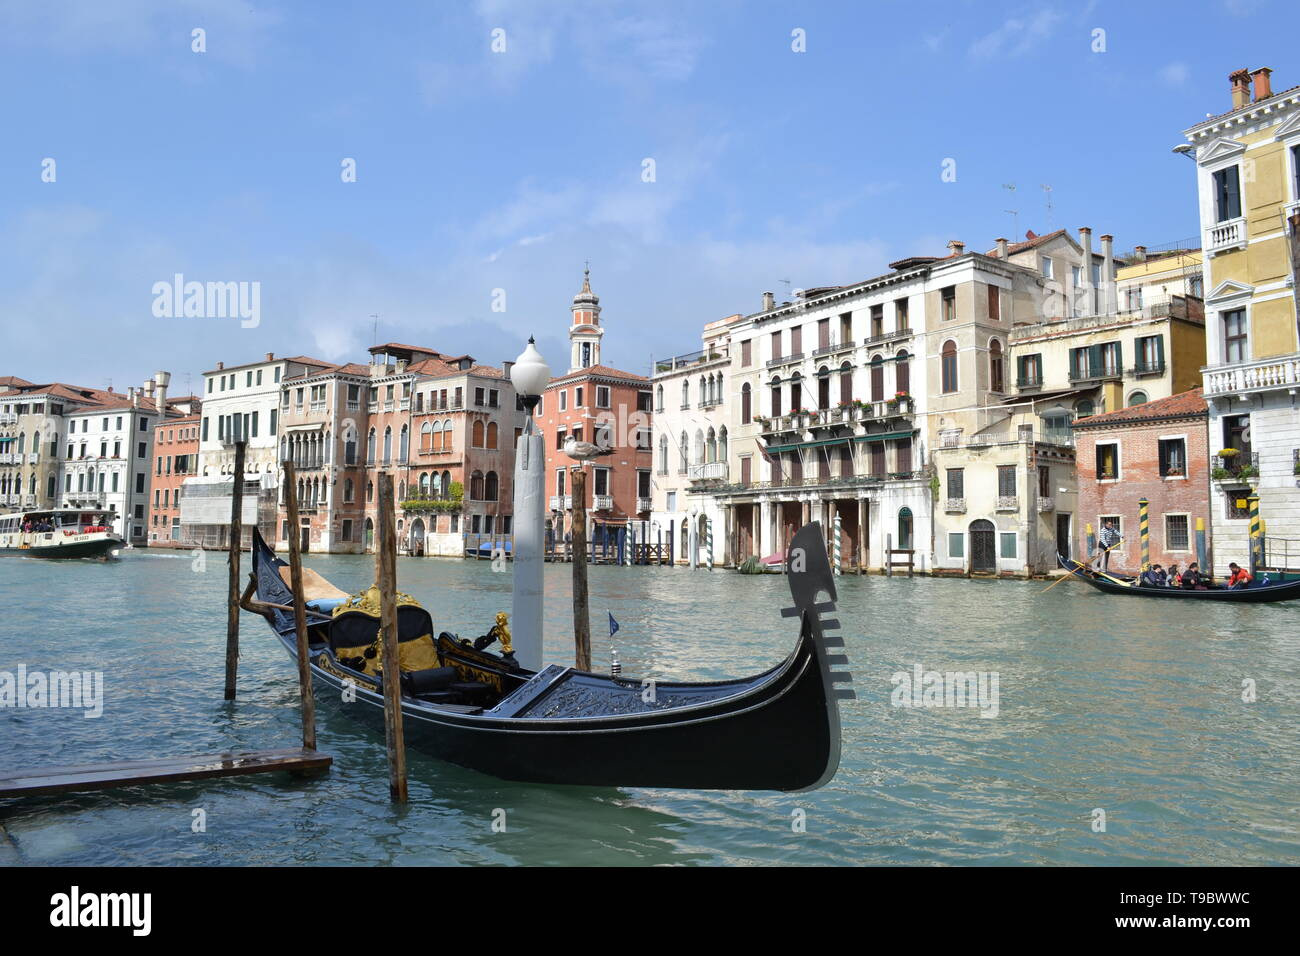 Venice/Italy - April 20, 2014: Beautiful gondola anchored at poles of the Grand canal in a sunny spring day. - Stock Image